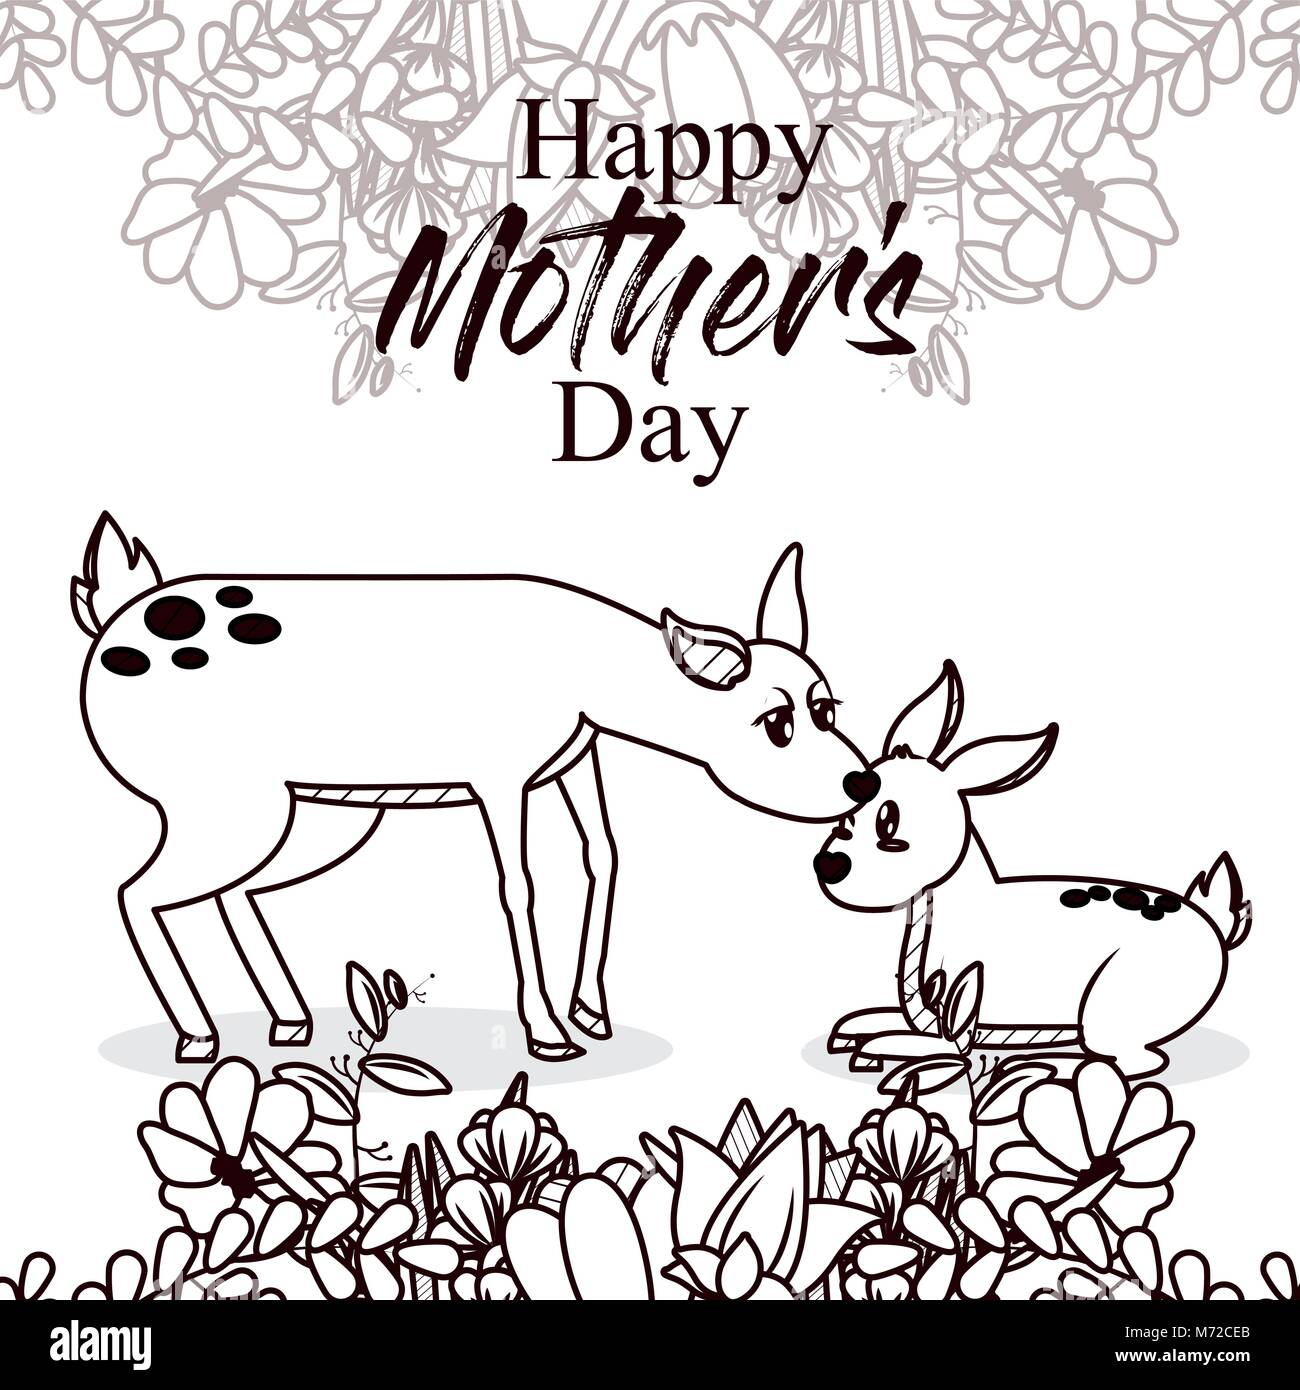 Happy Mothers Day Card With Cute Animals Stock Vector Art